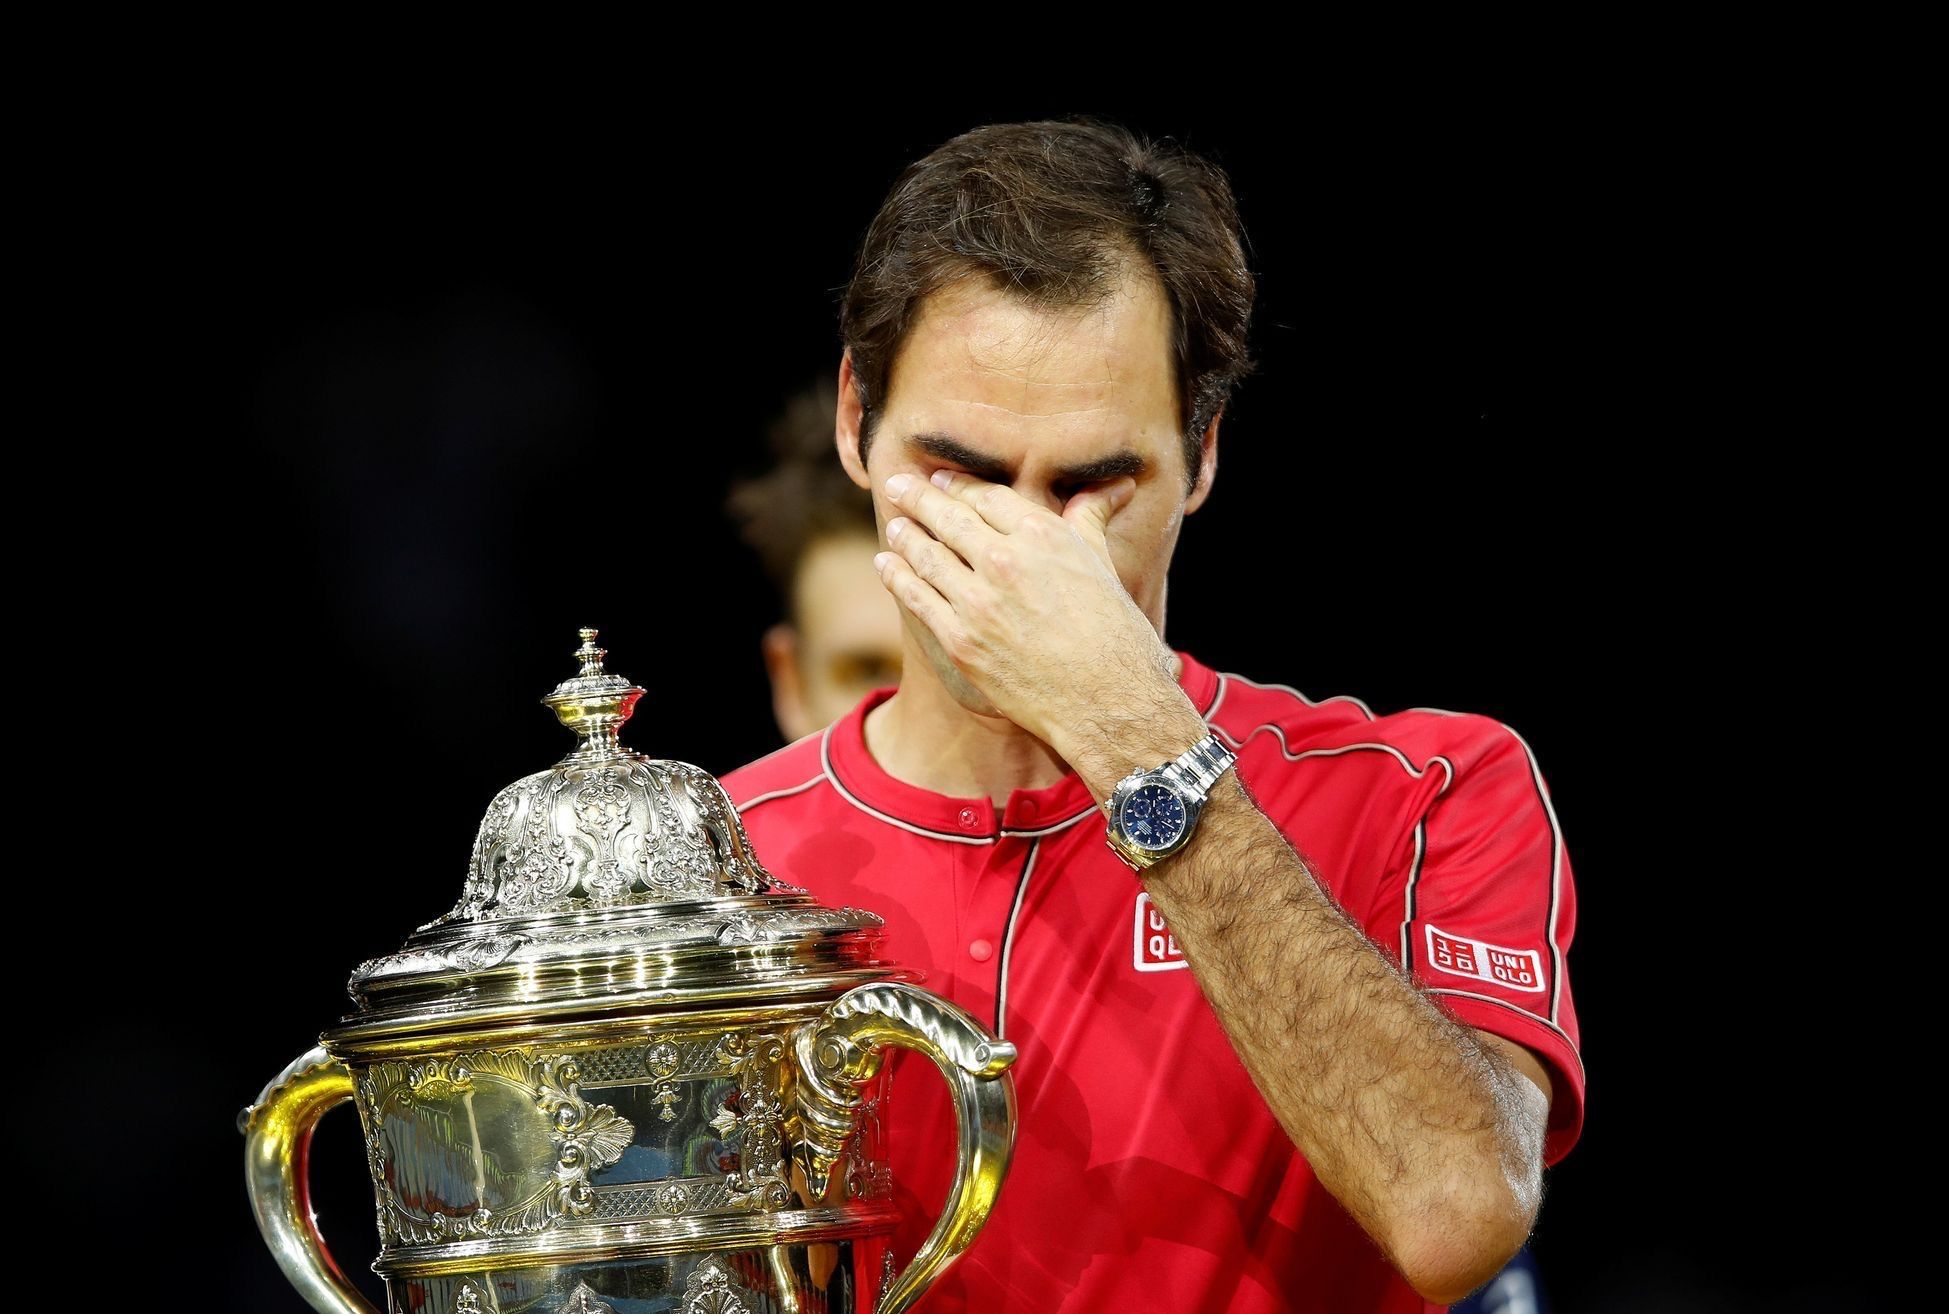 Pin by Swayam Lahoti on Roger Roger federer, Soccer